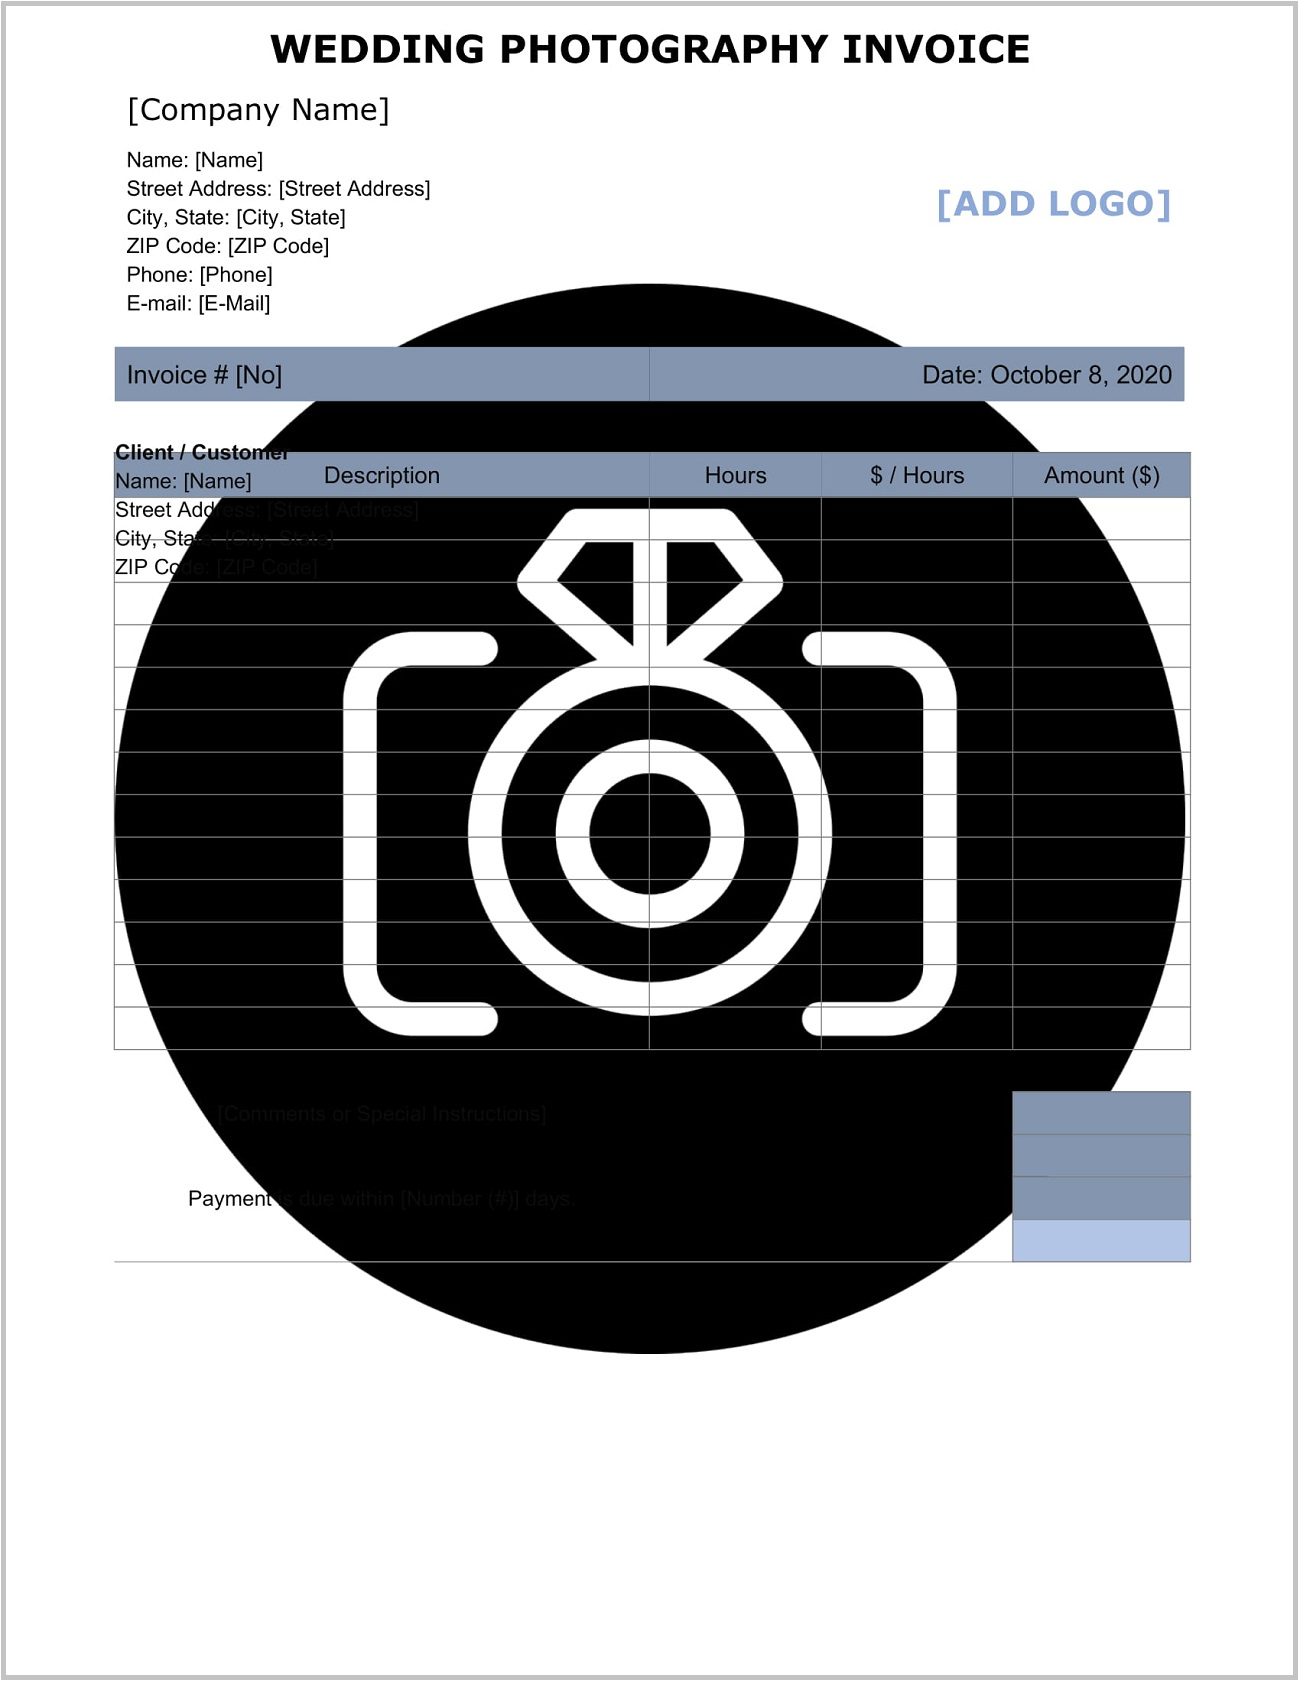 Wedding Photography Invoice Template Word